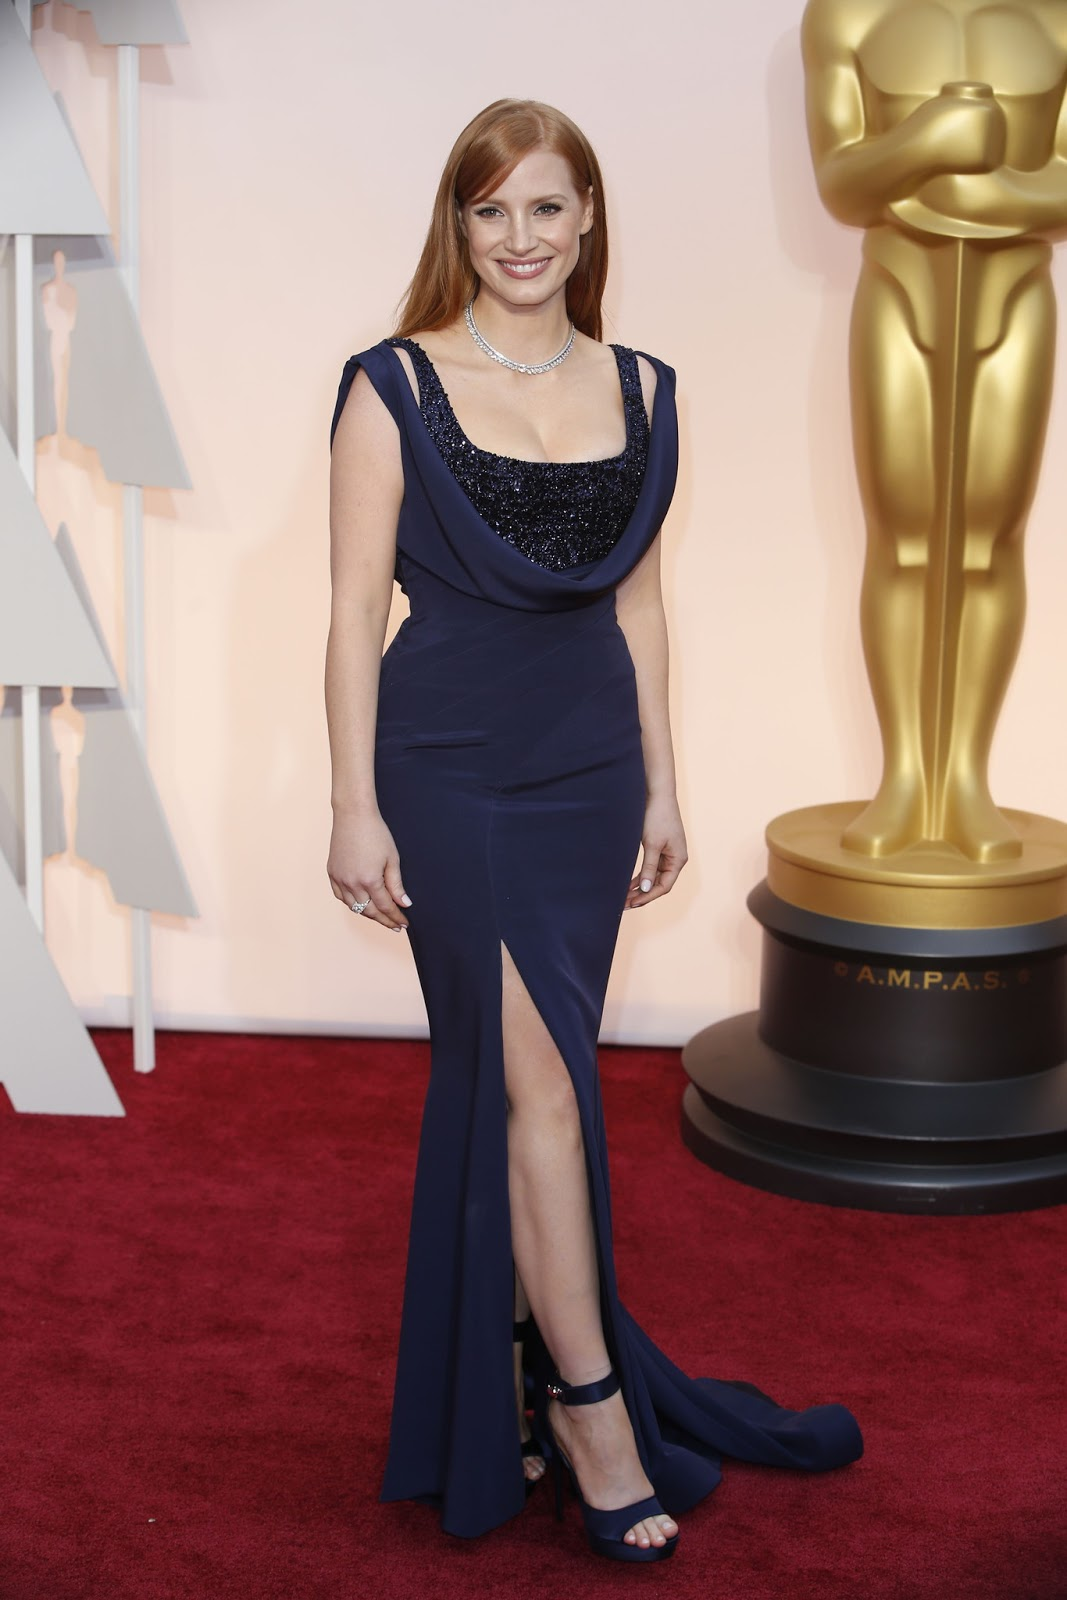 Jessica Chastain in Givenchy at the Oscars 2015